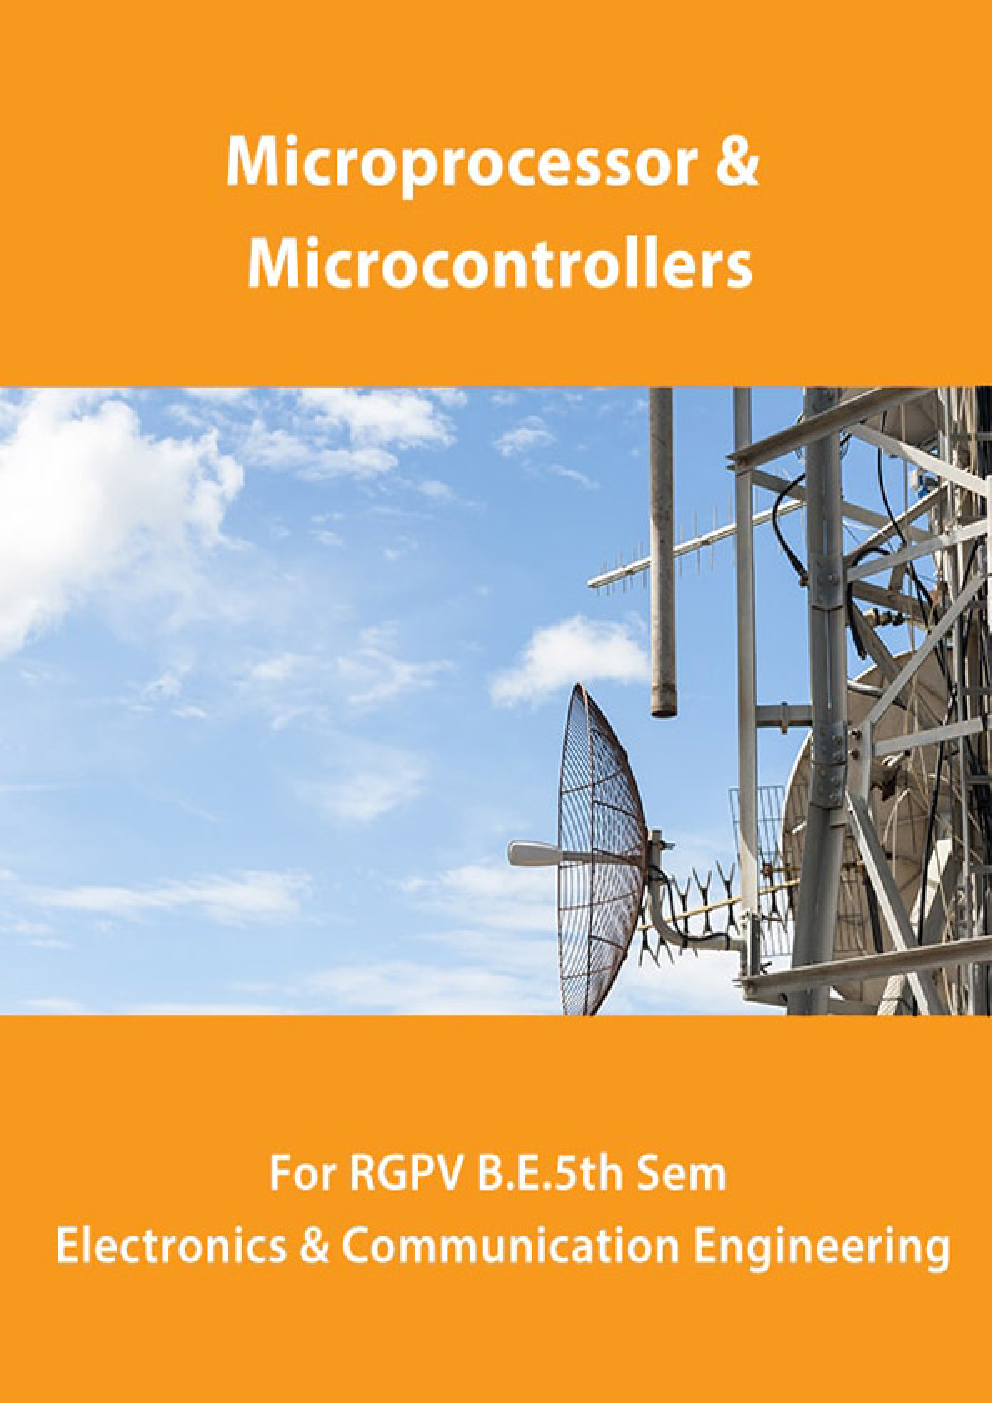 Microprocessor And Microcontrollers For RGPV B.E. 5th Sem Electronics & Communication Engineering - Page 1